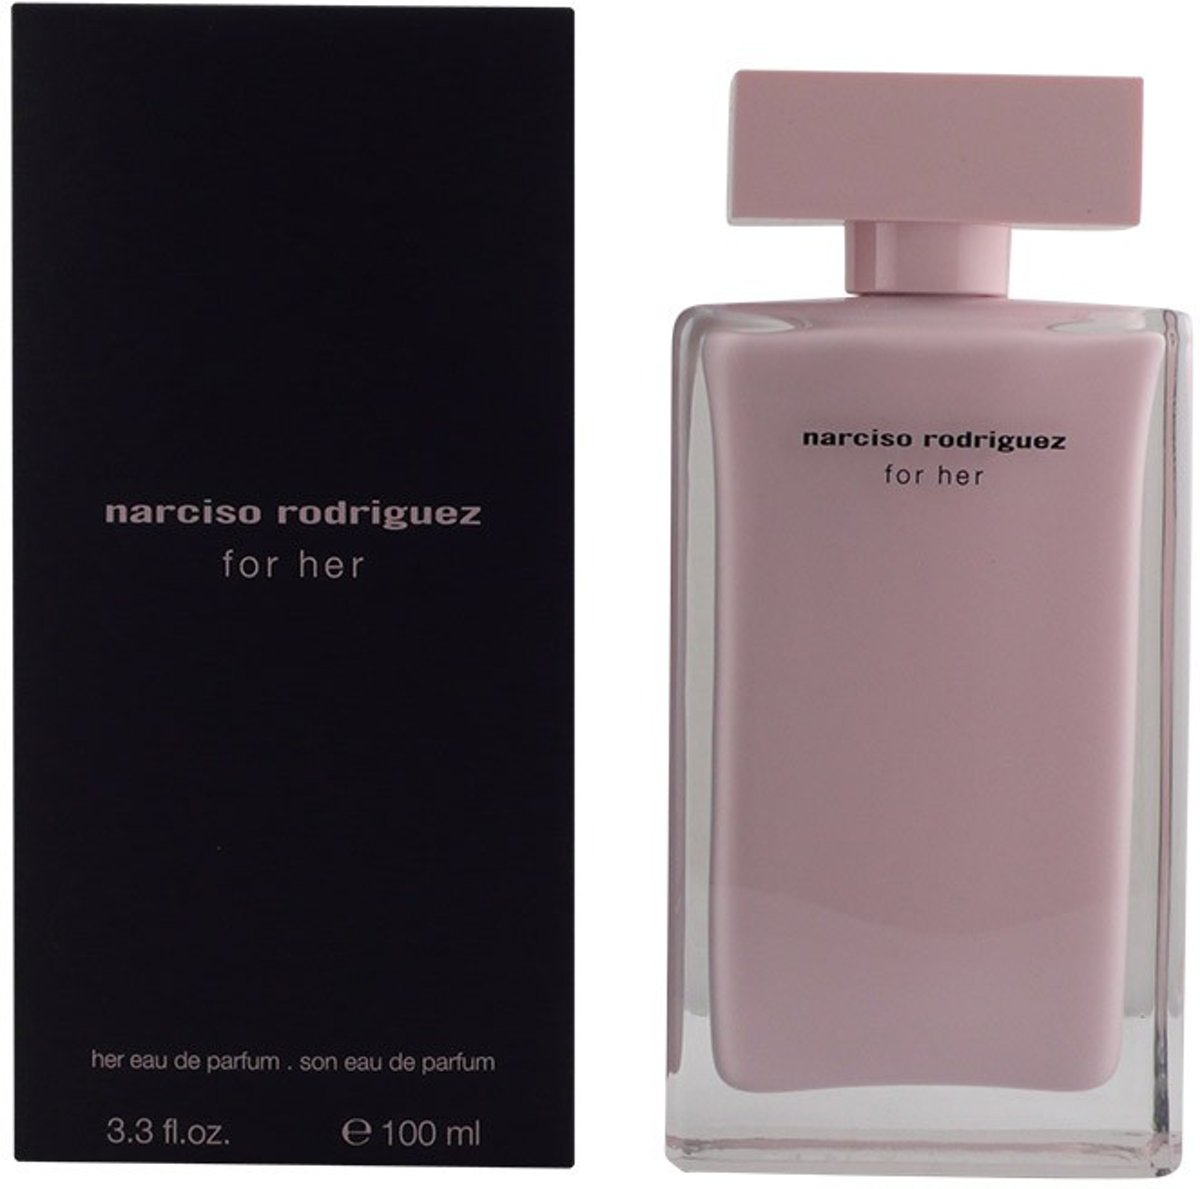 MULTI BUNDEL 2 stuks NARCISO RODRIGUEZ FOR HER Eau de Perfume Spray 100 ml